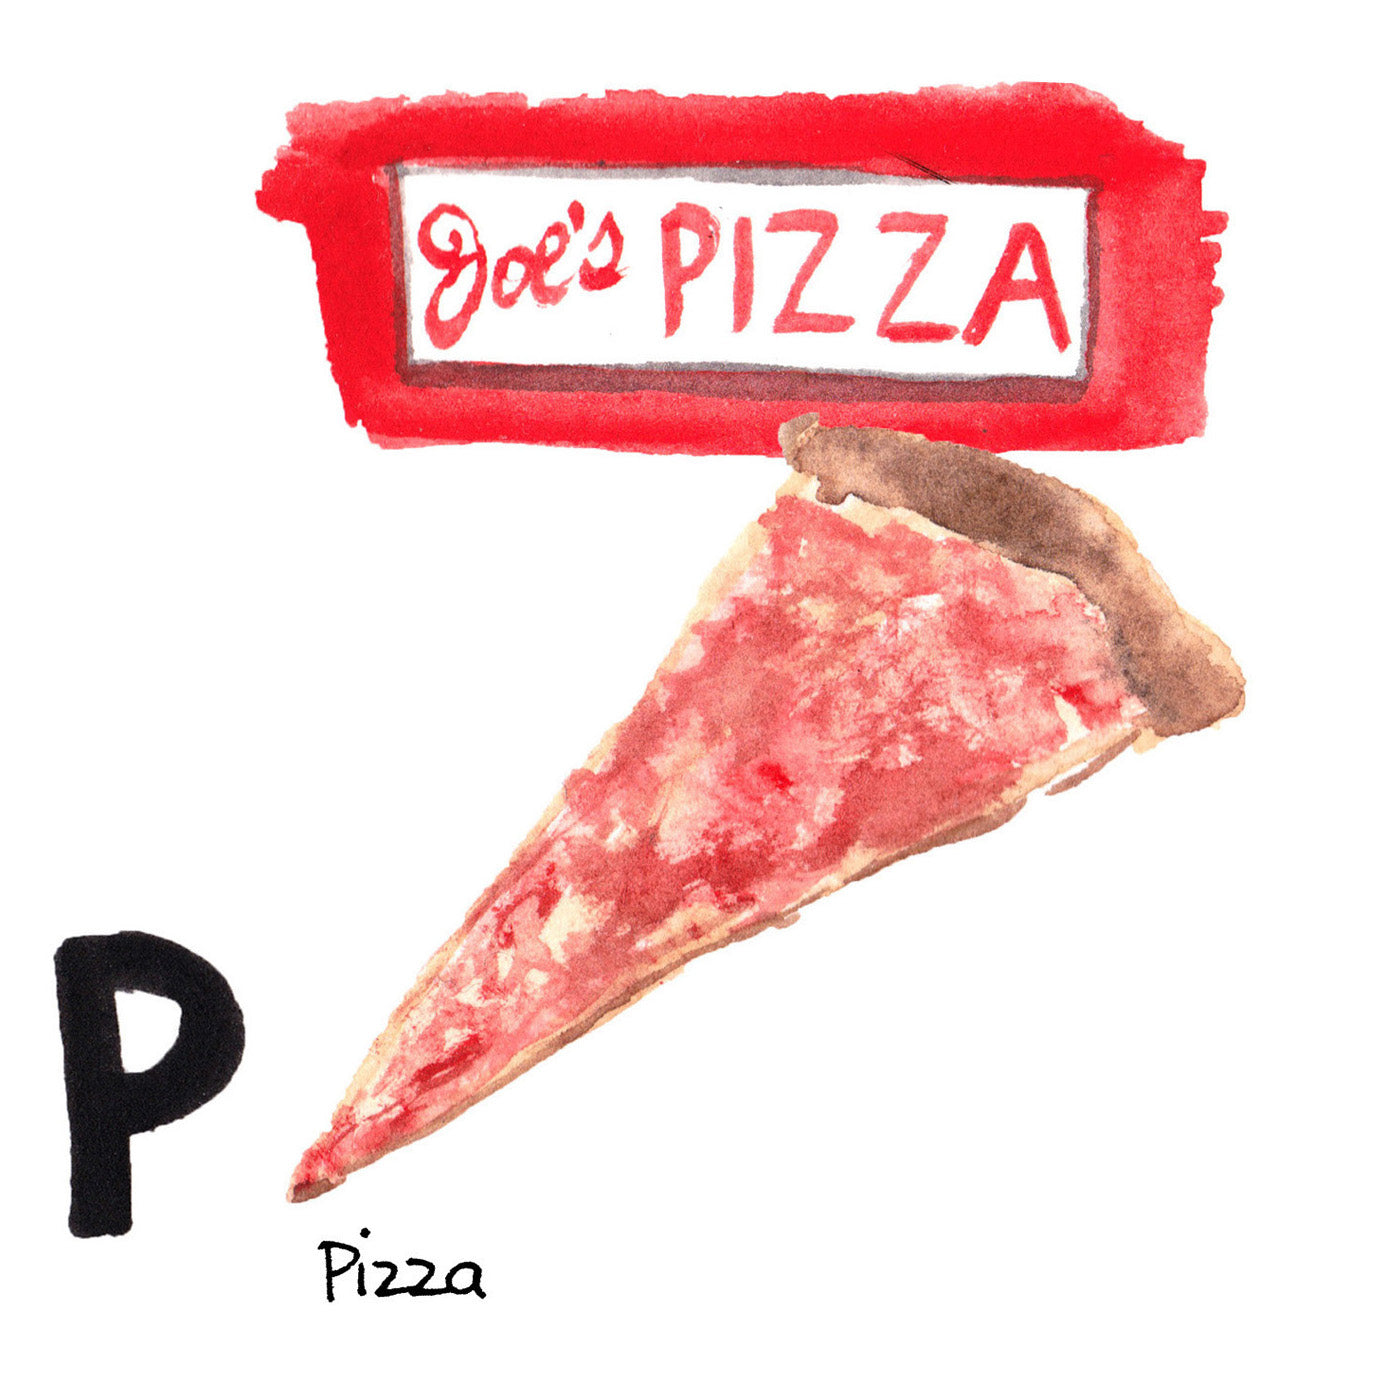 P is for Pizza. The first pizzeria in the United States was founded in 1905 in a small grocery store in Little Italy. The original New York City pizzas were made with cheese on the bottom and sauce on top.